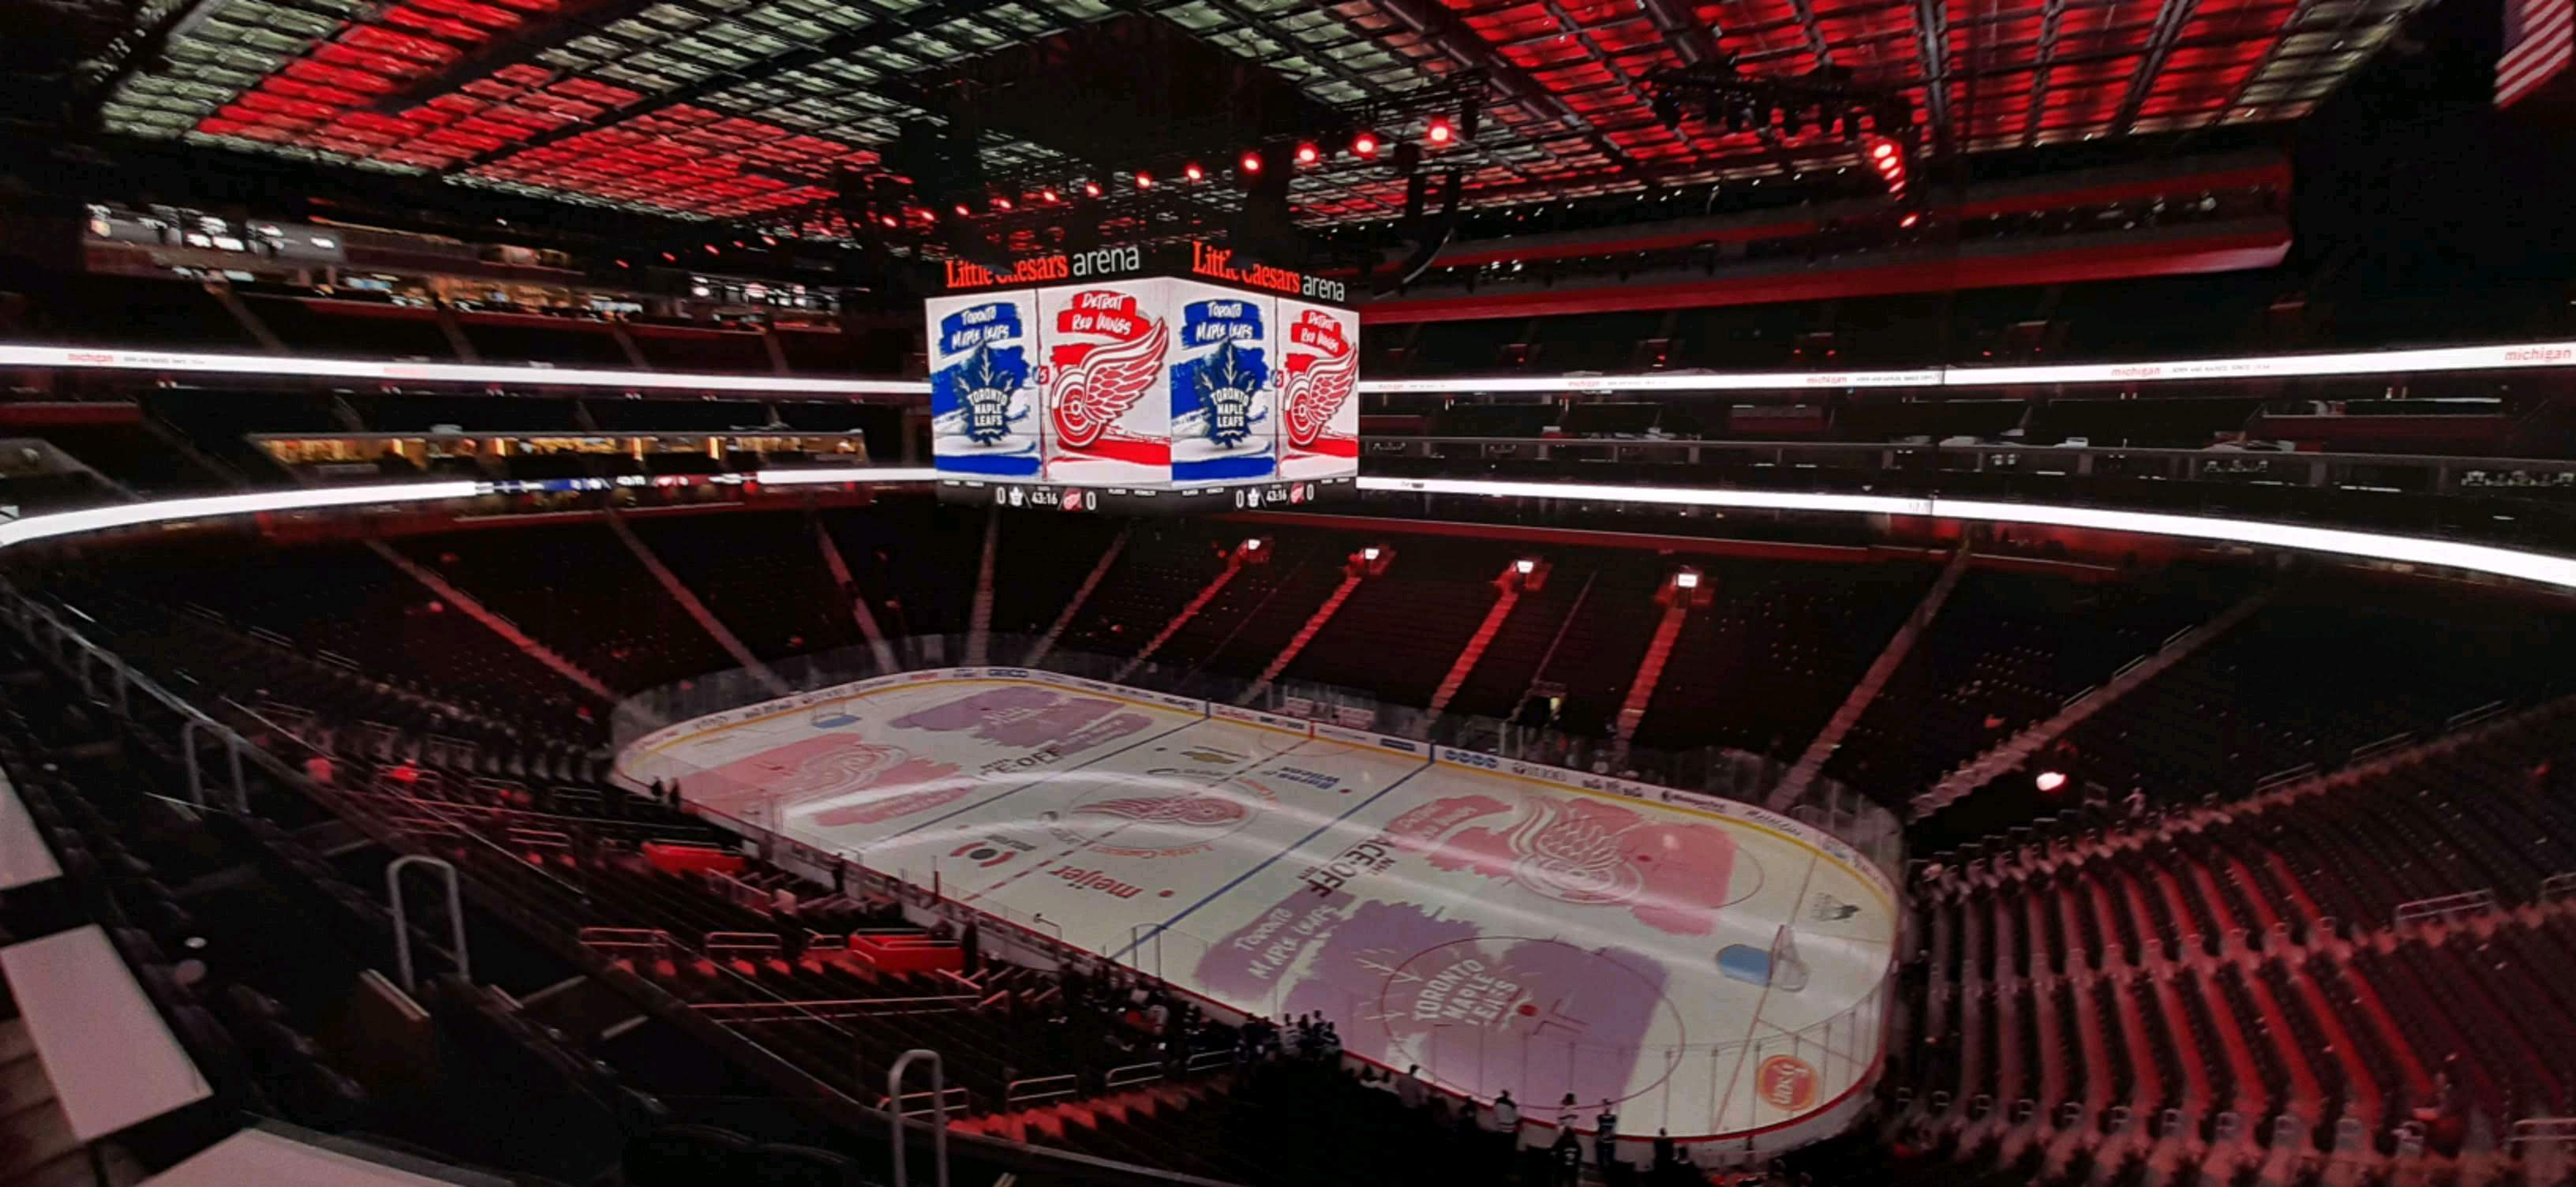 Little Caesars Arena Section M24 Row 1 Seat 3